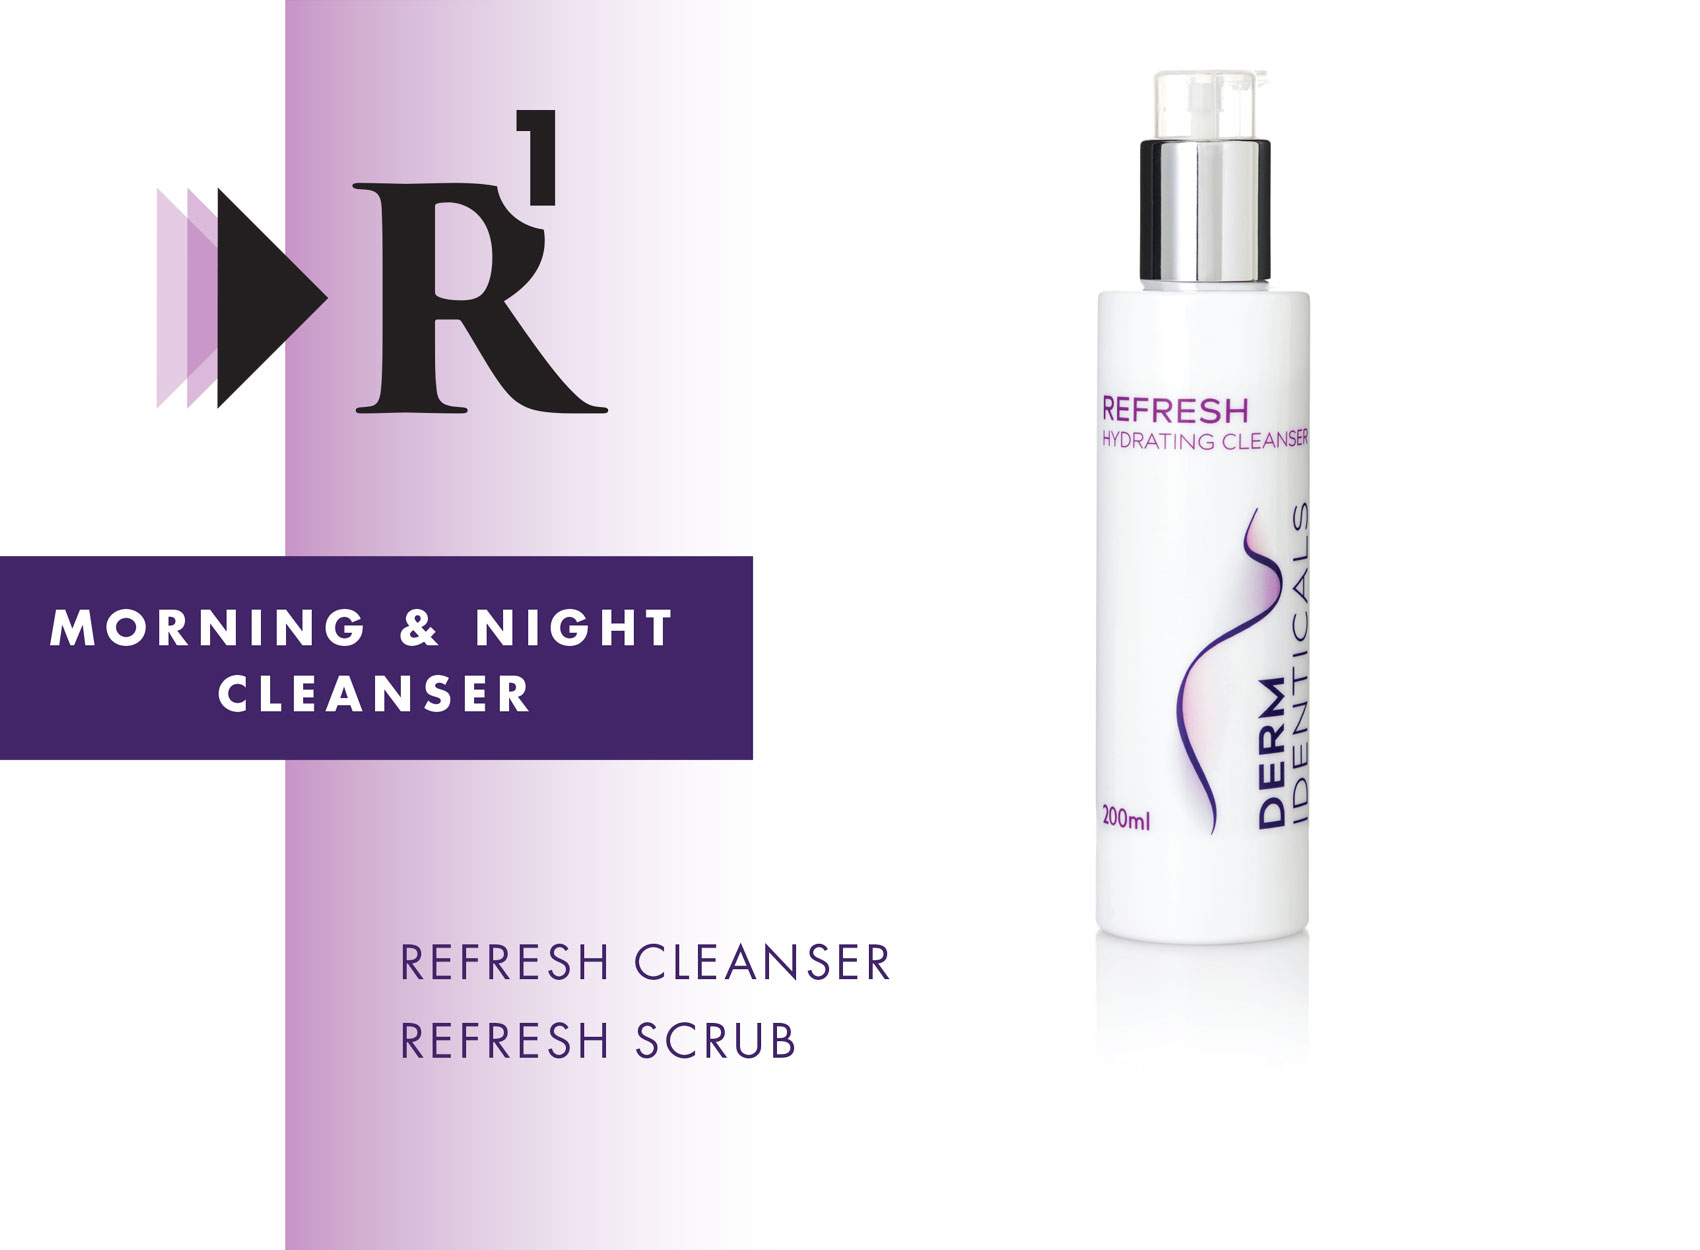 R1 Morning and Night Cleanser